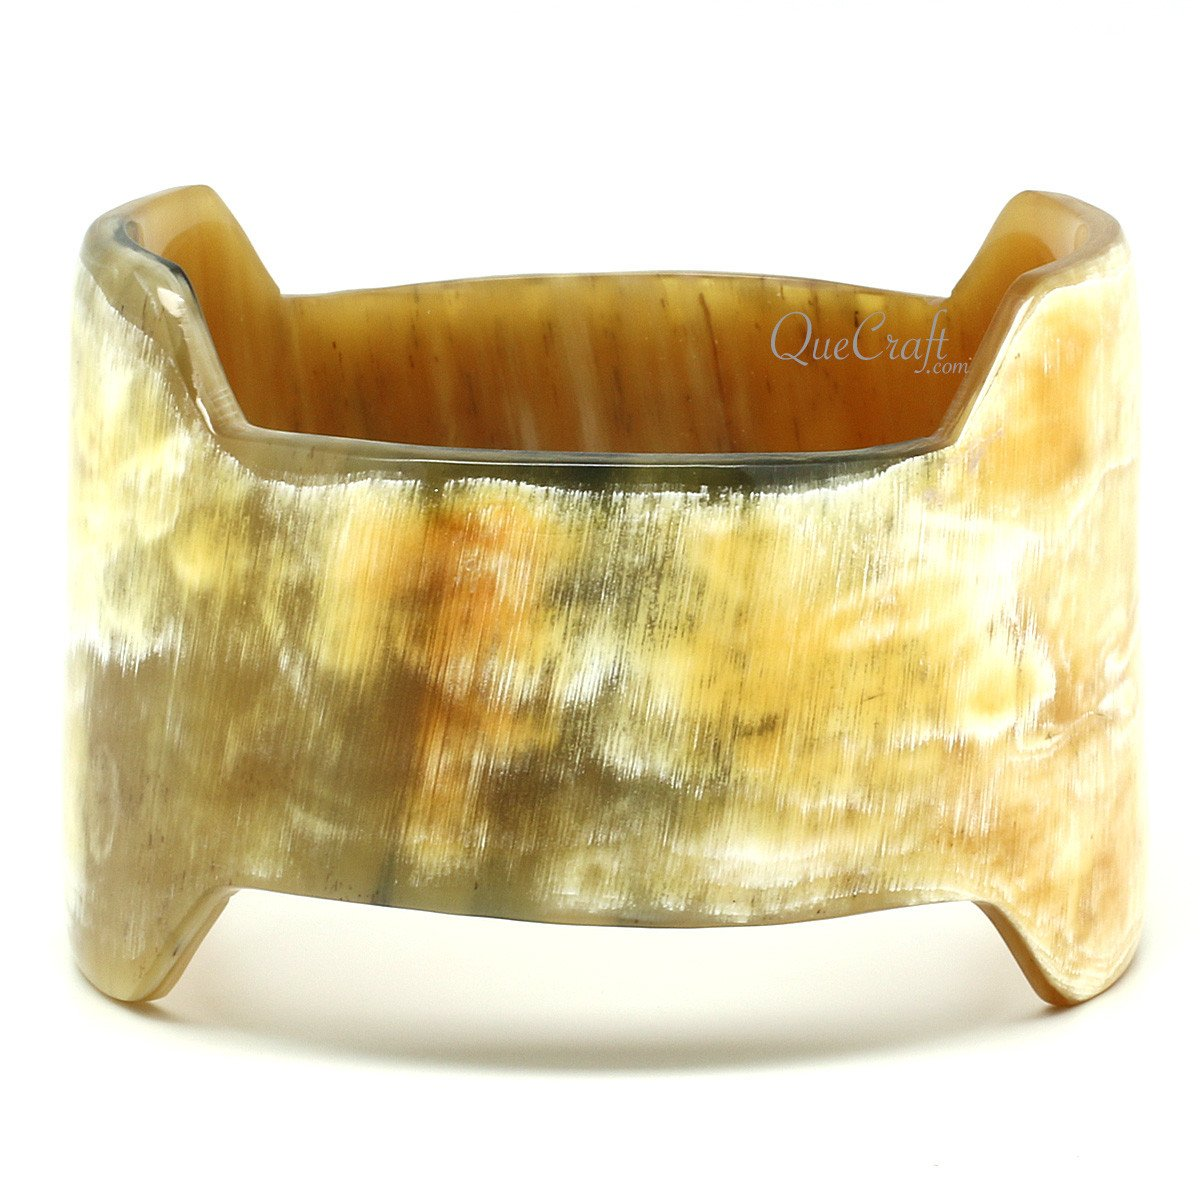 Horn Bangle Bracelet #12127 - HORN.JEWELRY by QueCraft